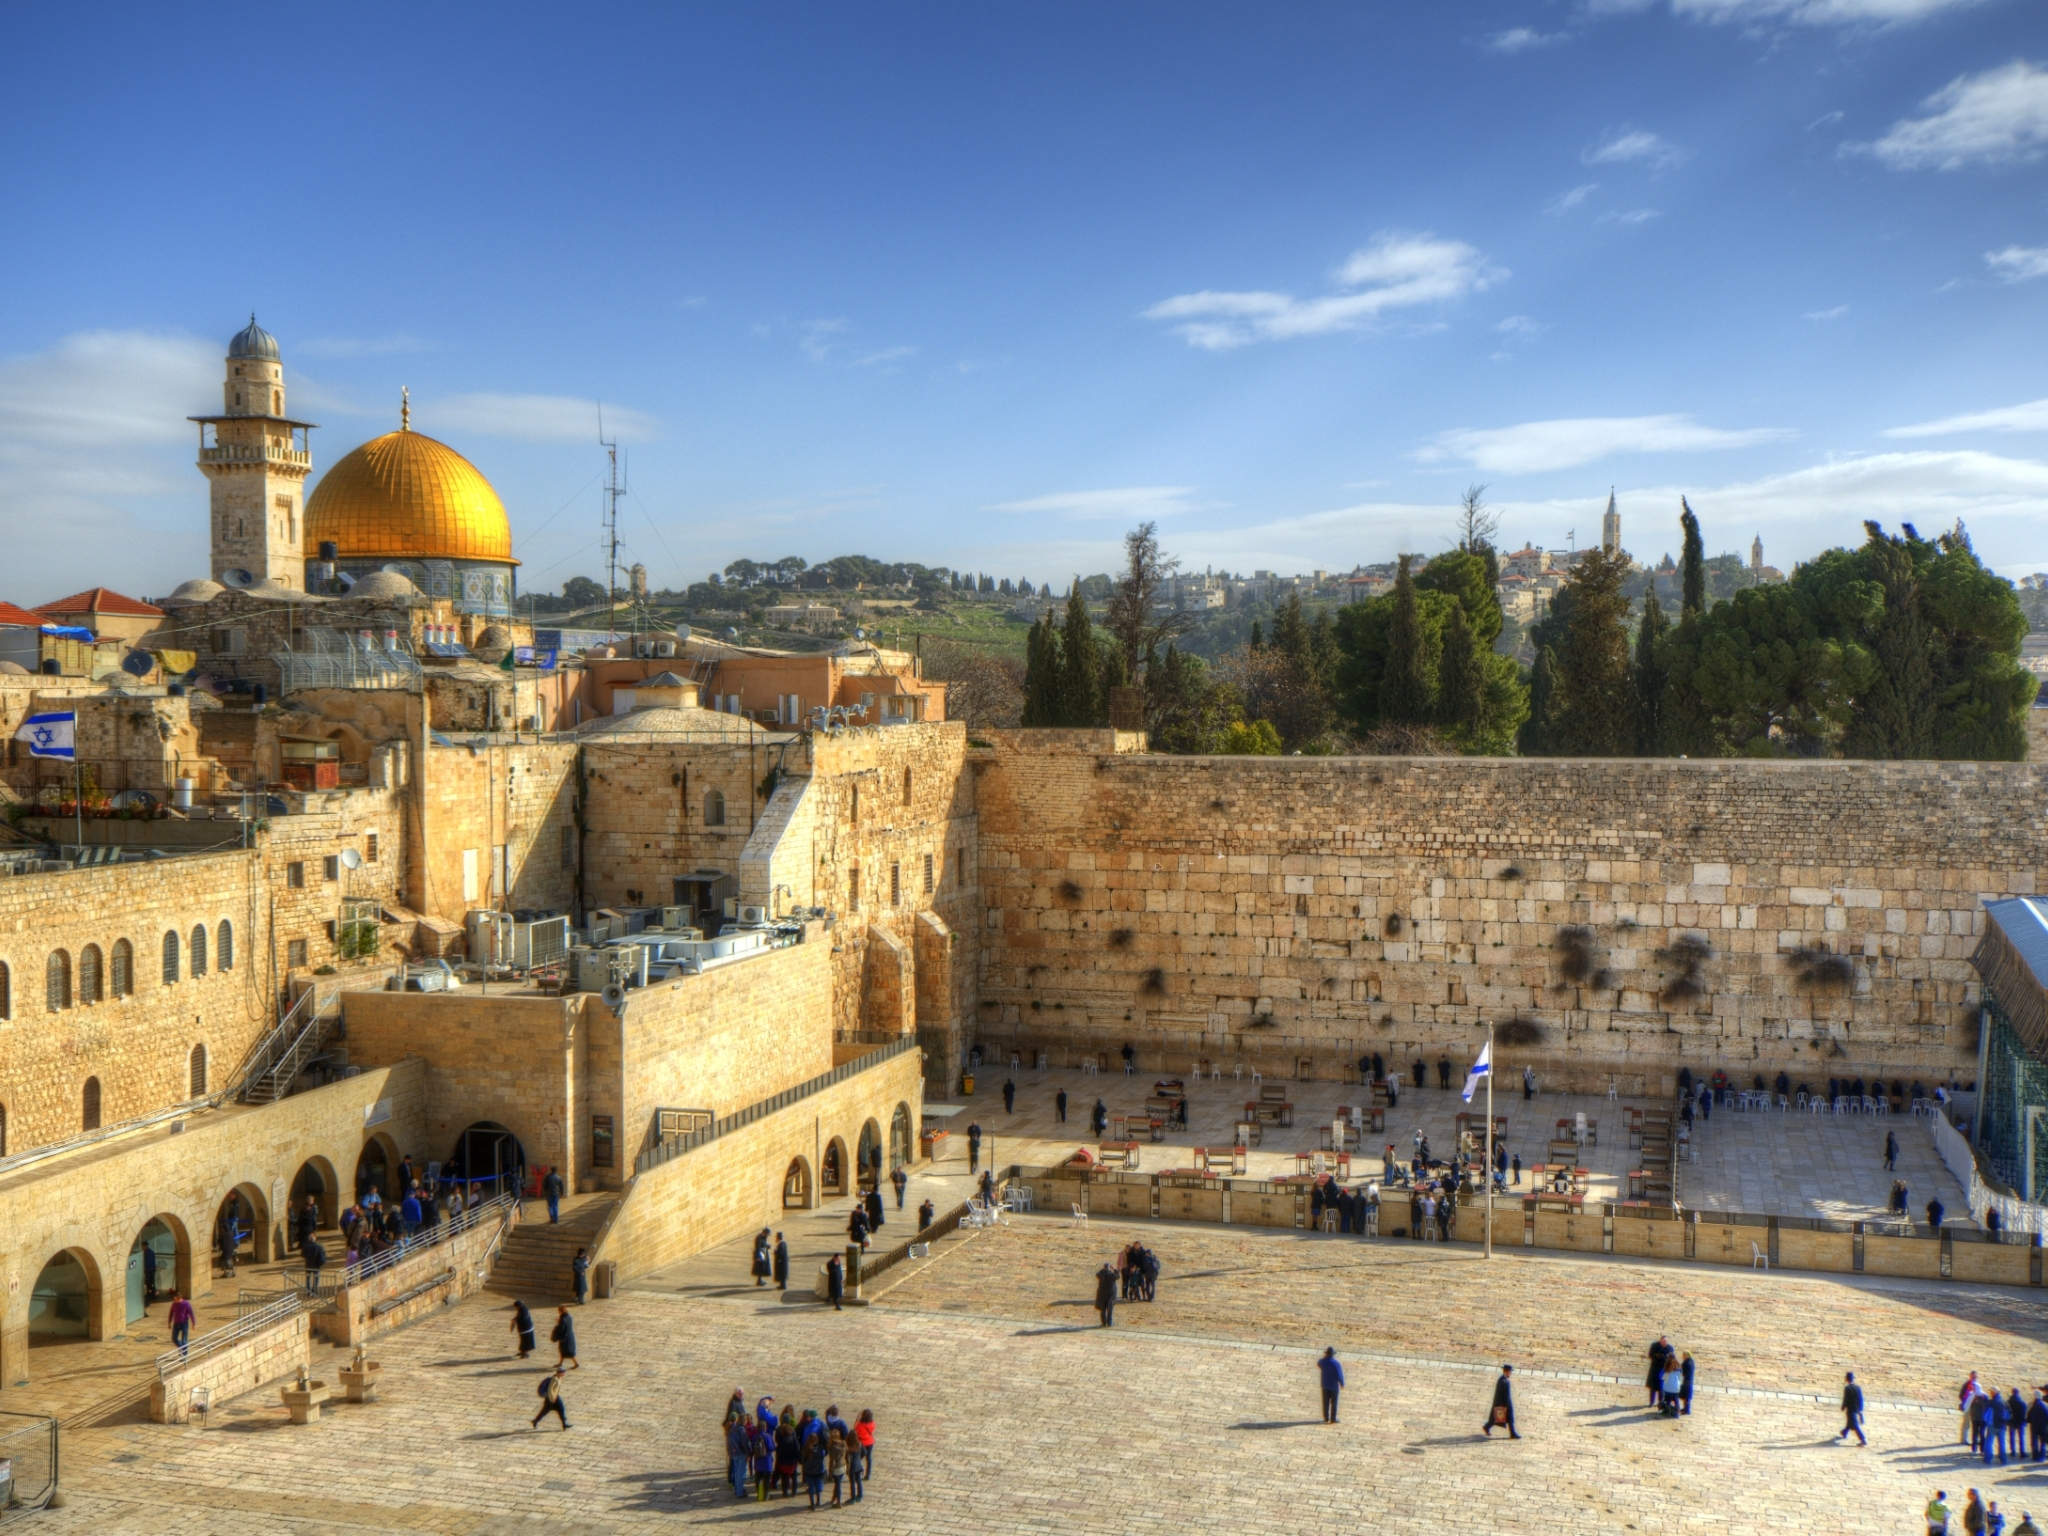 The Wailing Wall